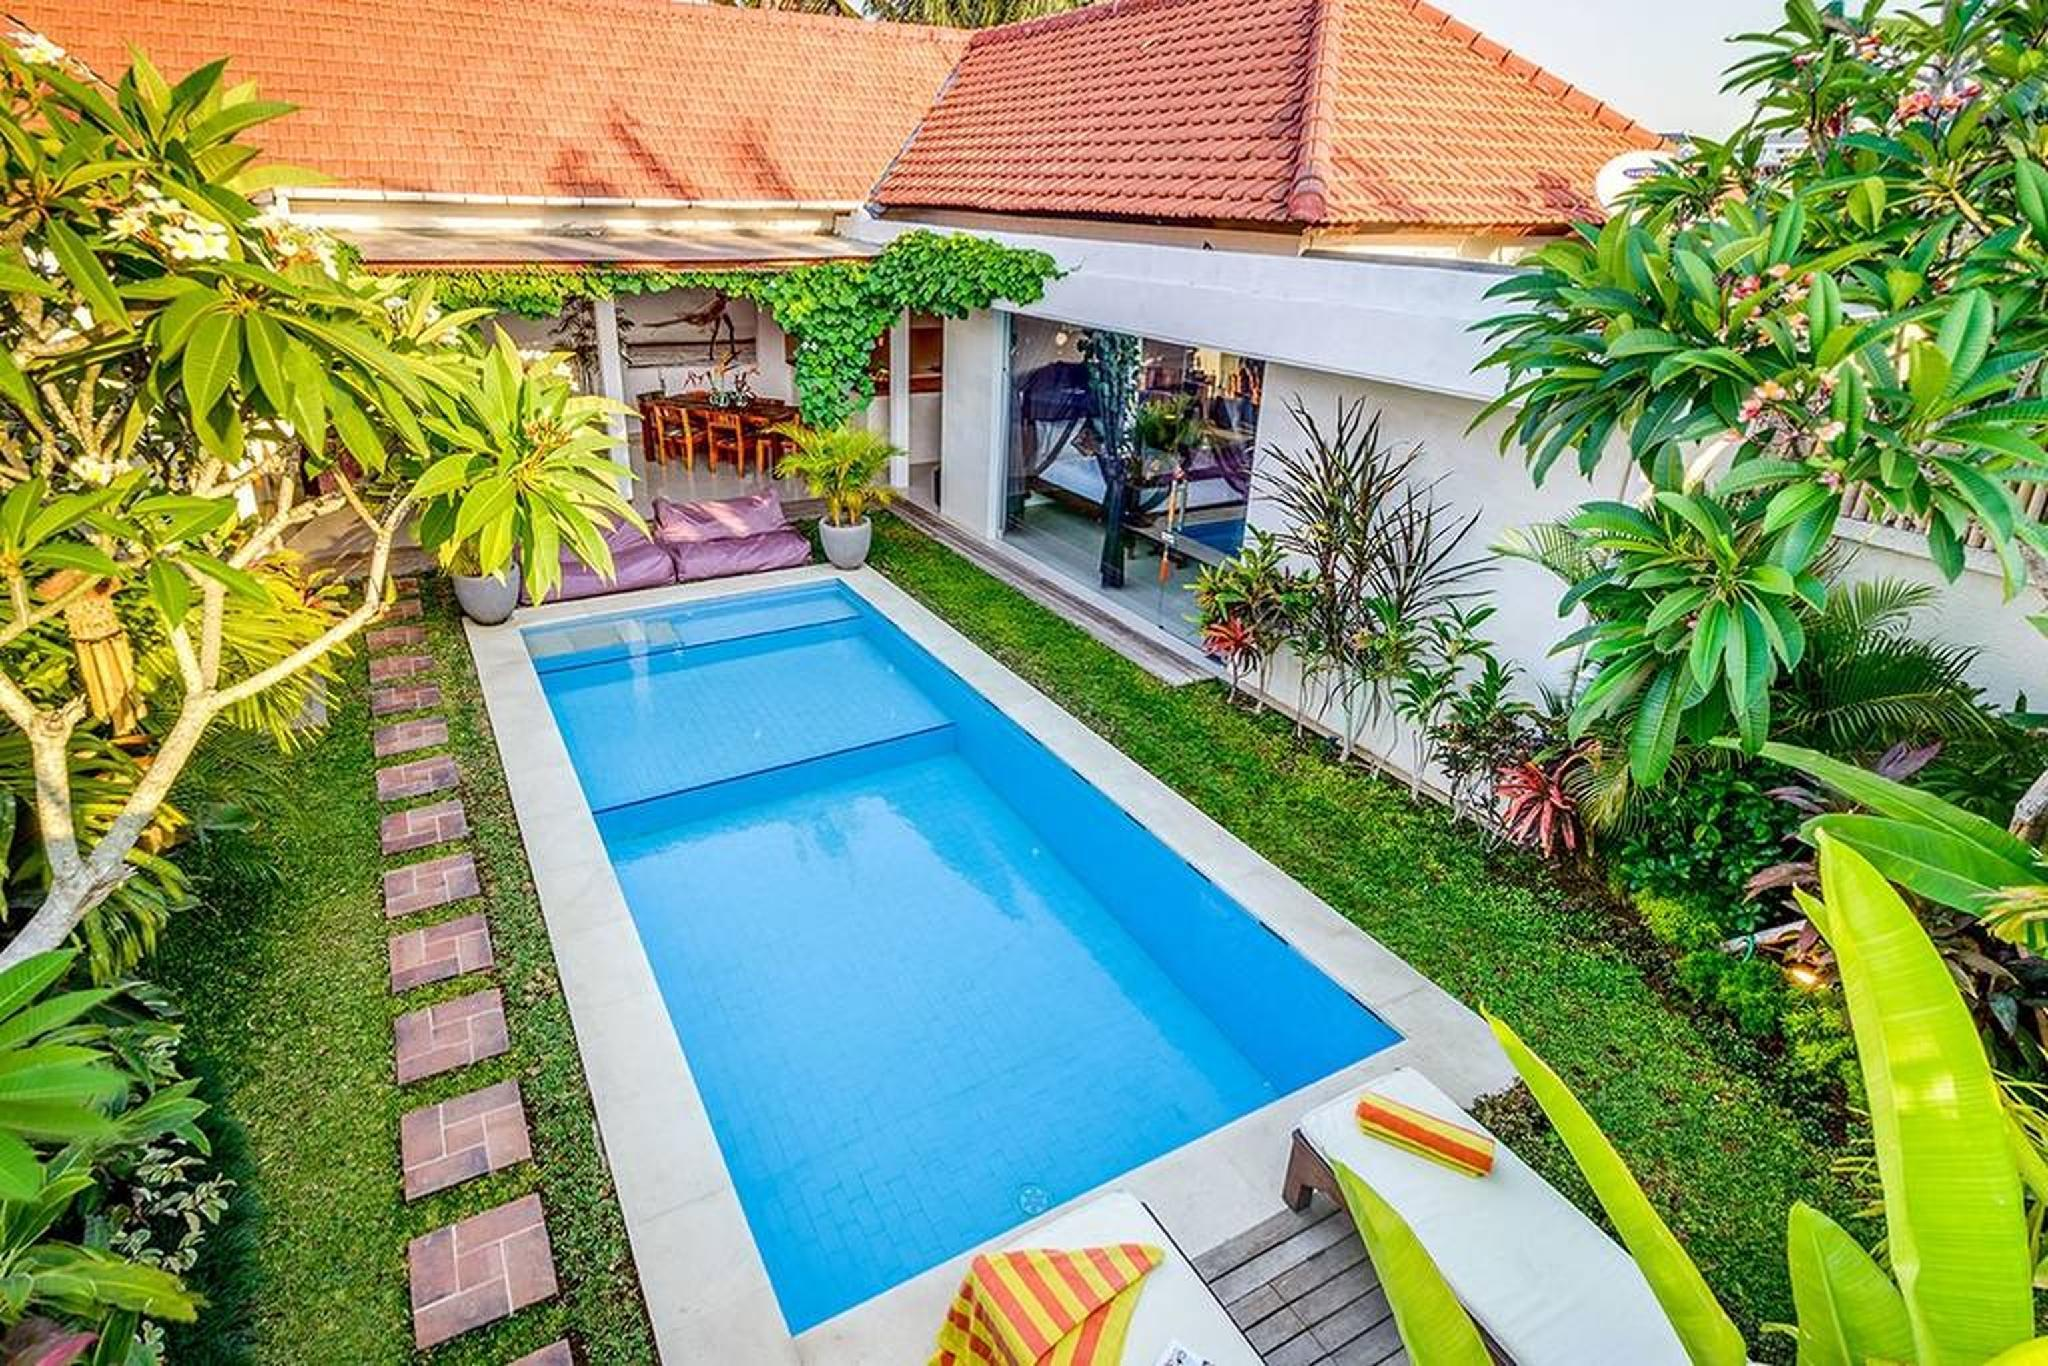 3 BDR Villa modern style in Seminyak Reviews